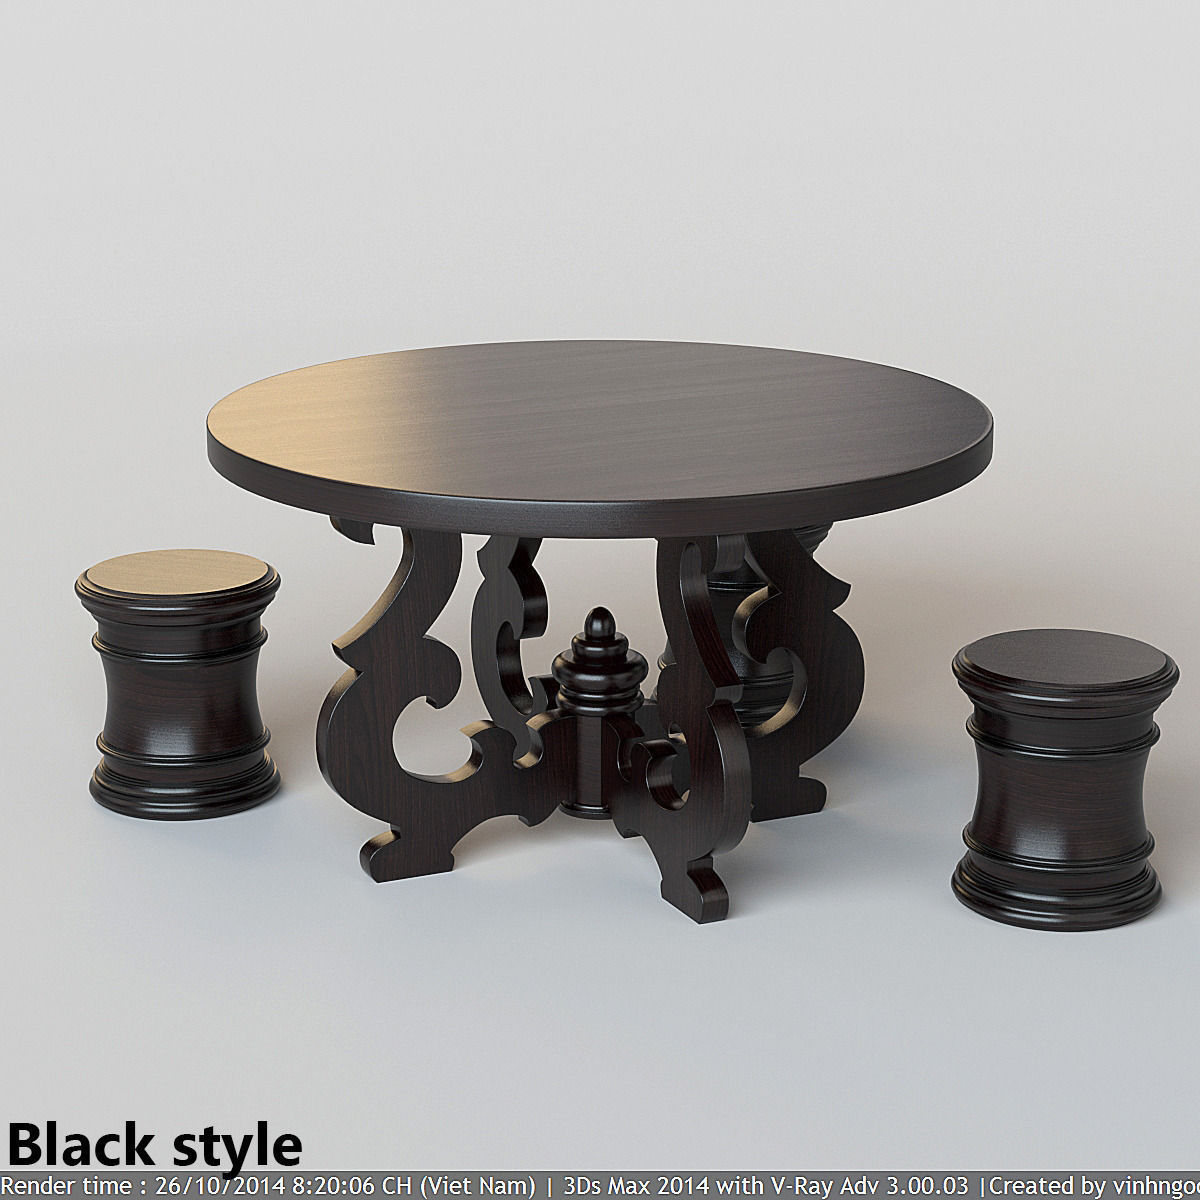 French Country Round Dining Table: French Country Round Dining Table 3D Model MAX FBX